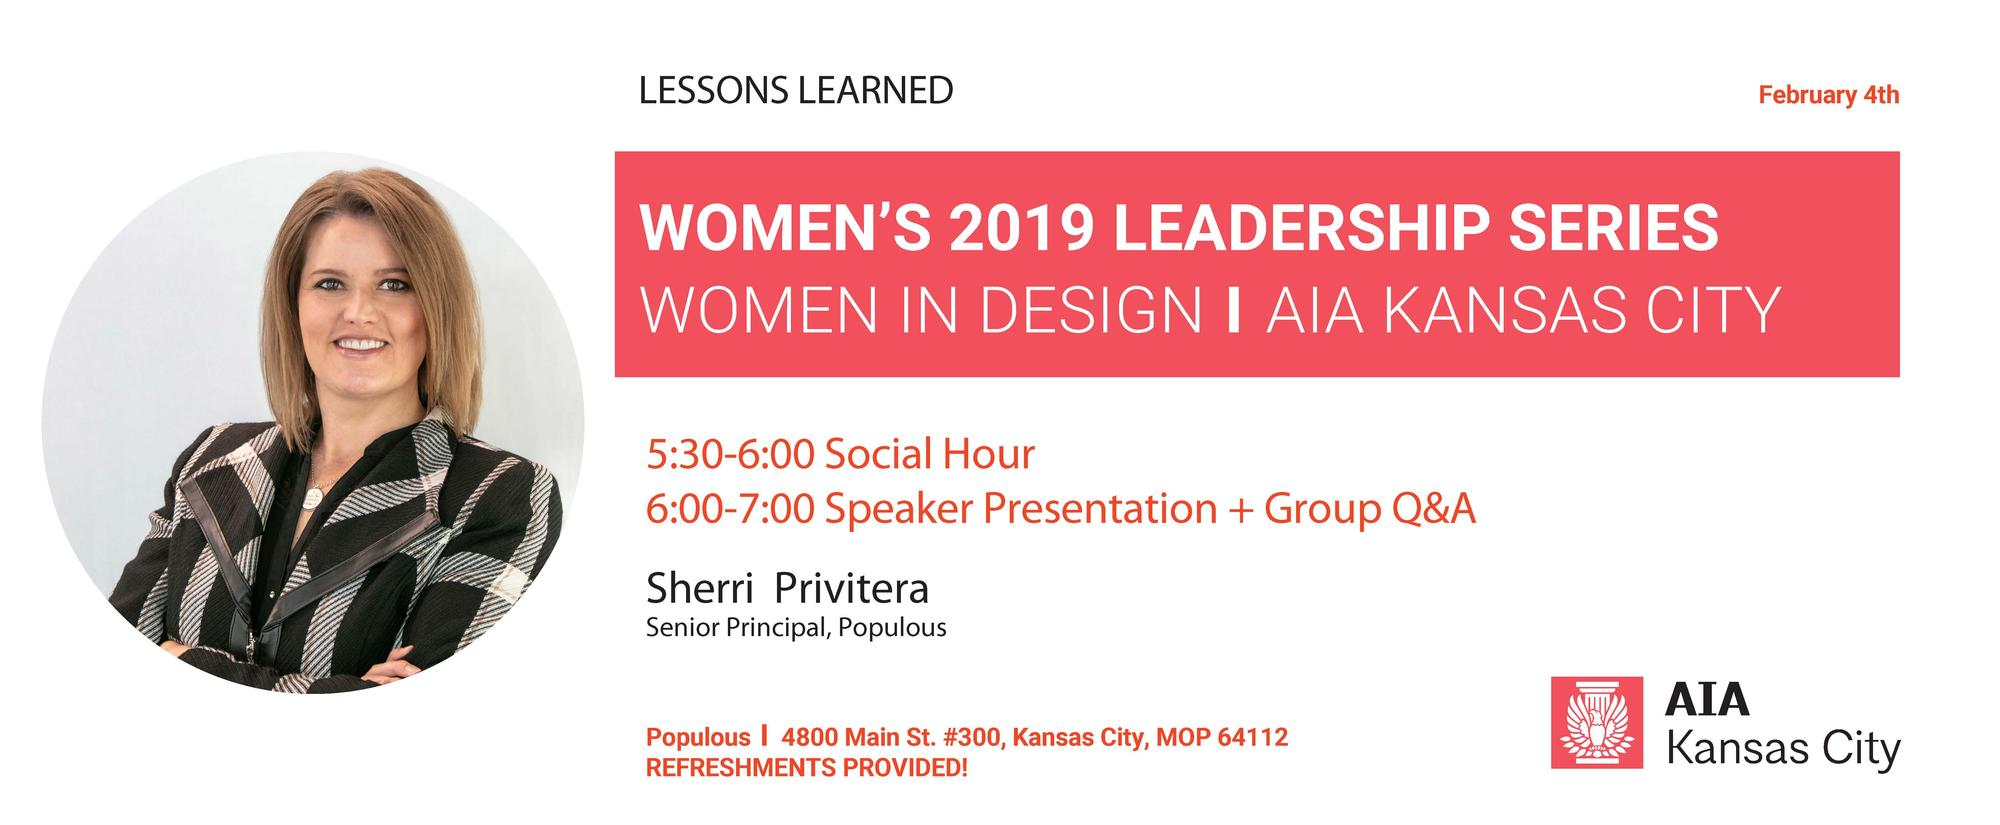 Women in Design Leadership Series: Sherri Privitera